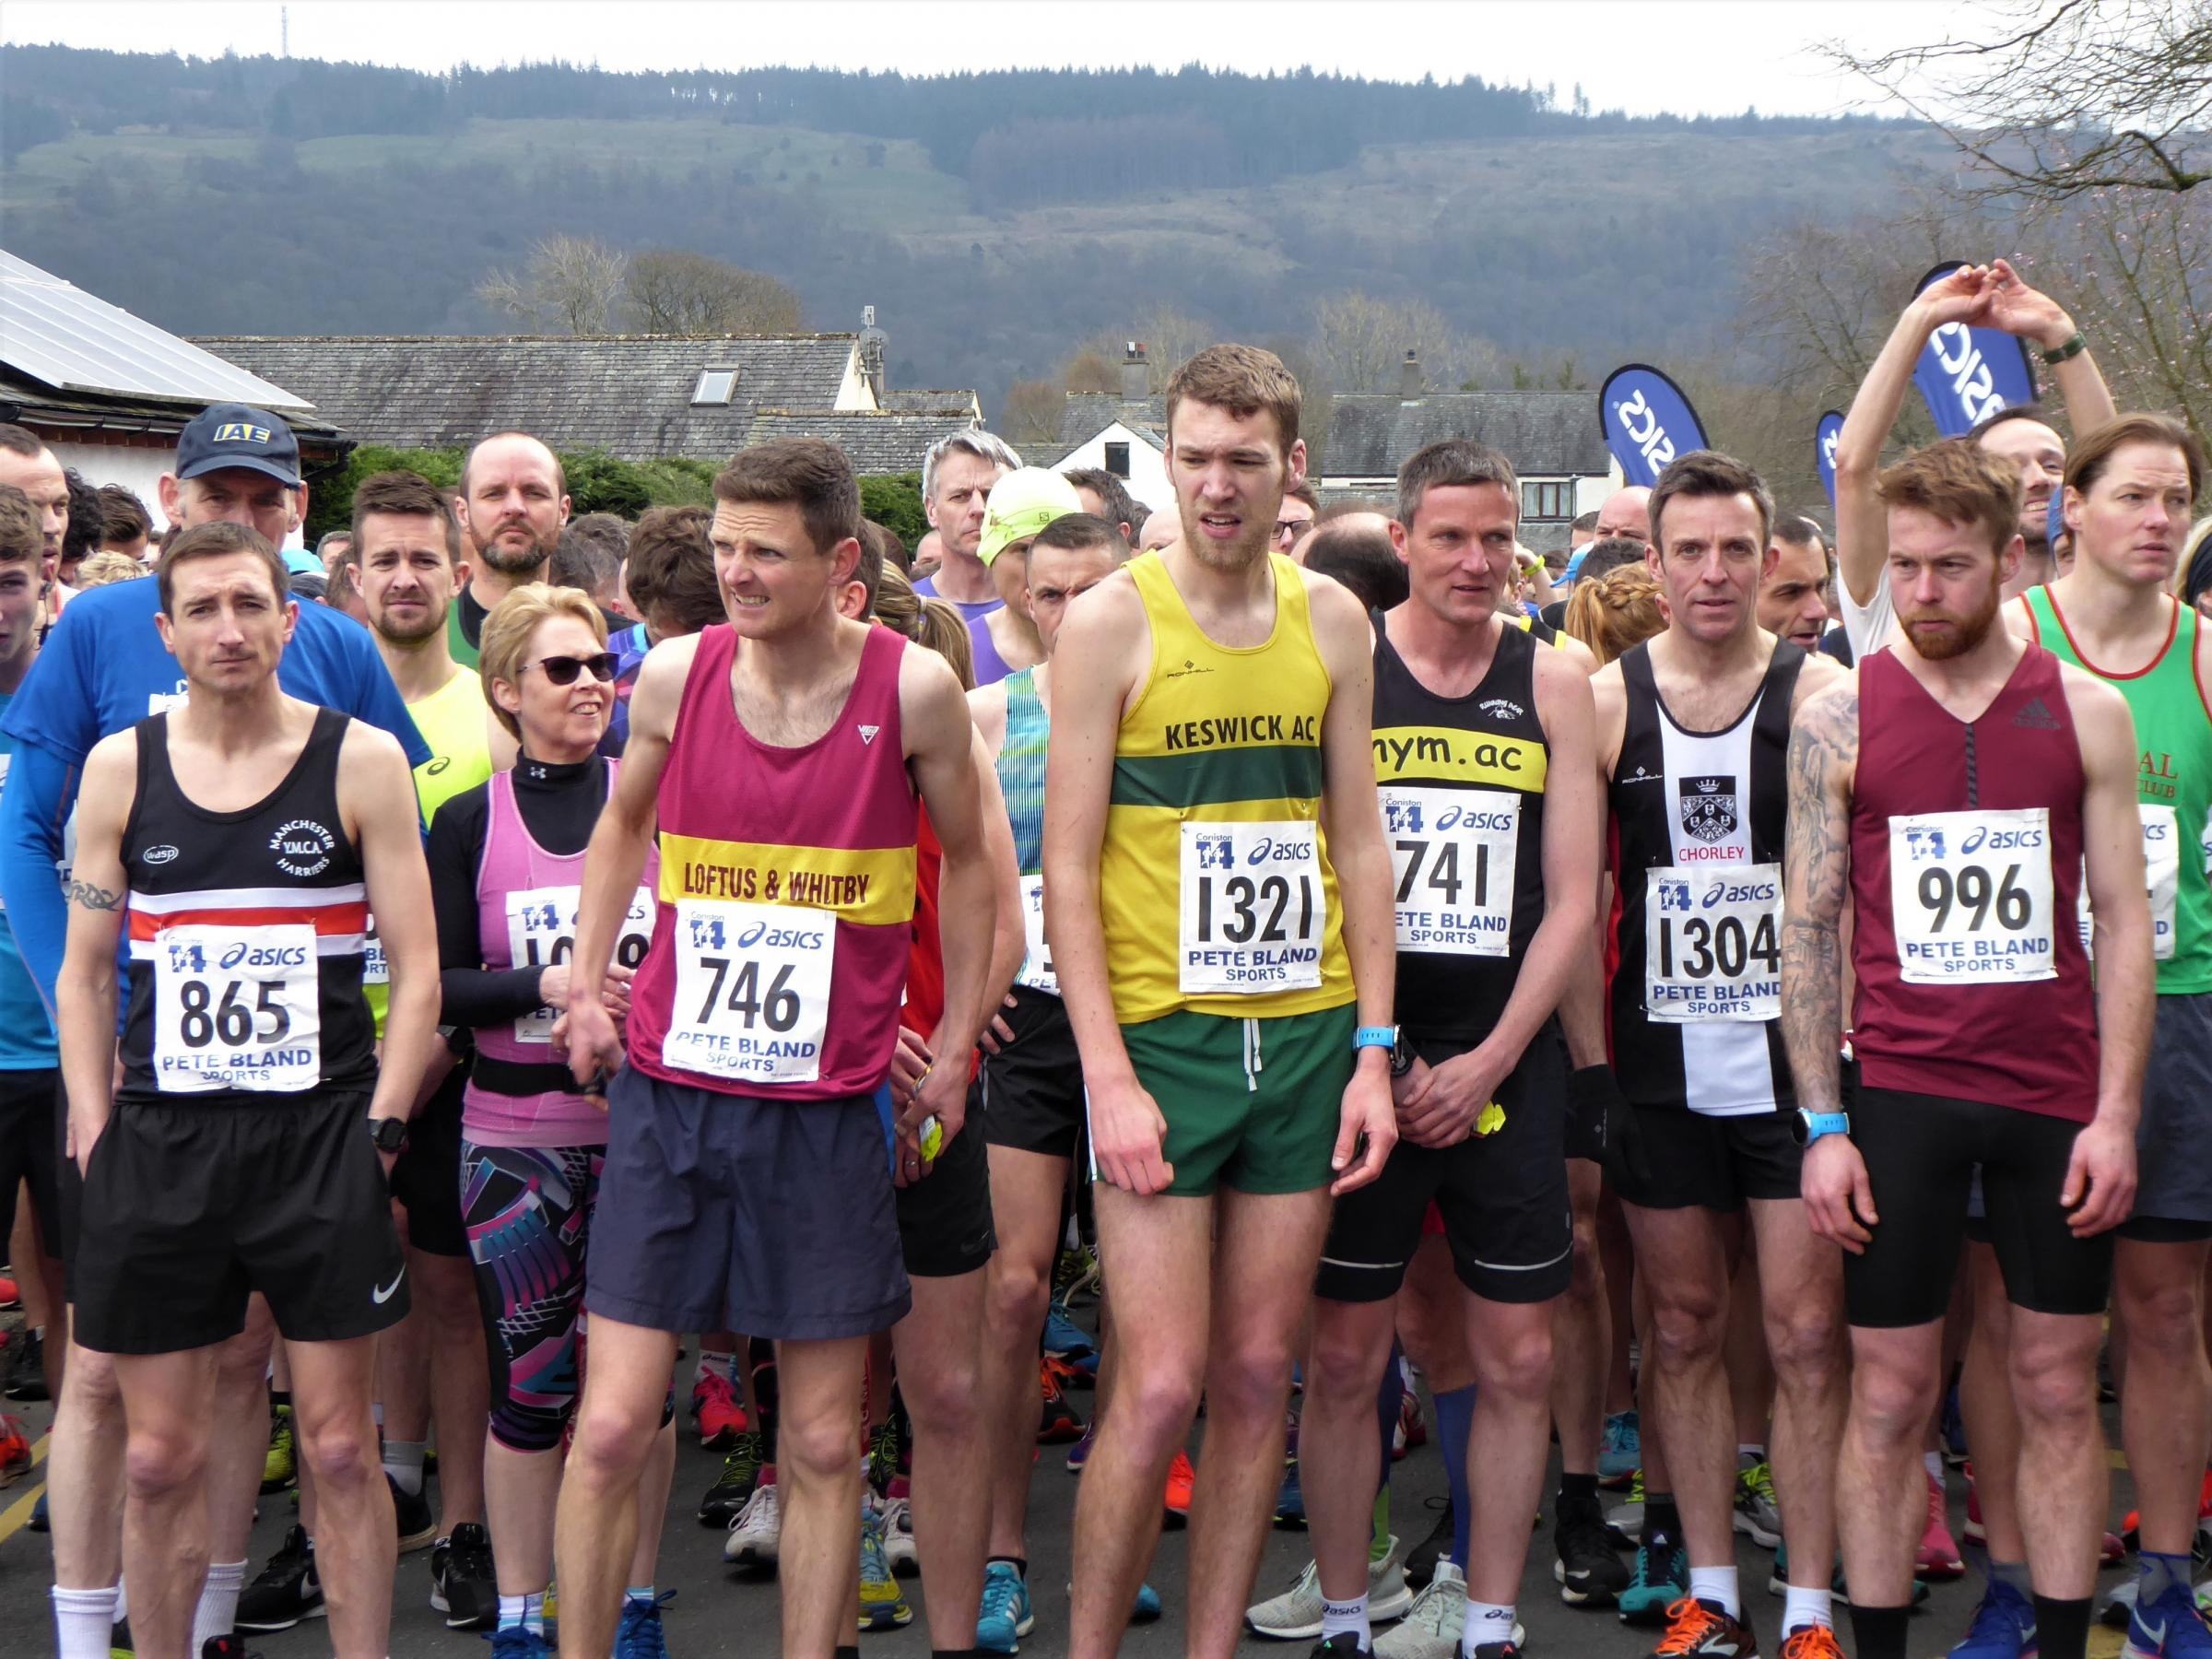 Runners ready for the off at the start of the Coniston 14-mile road race